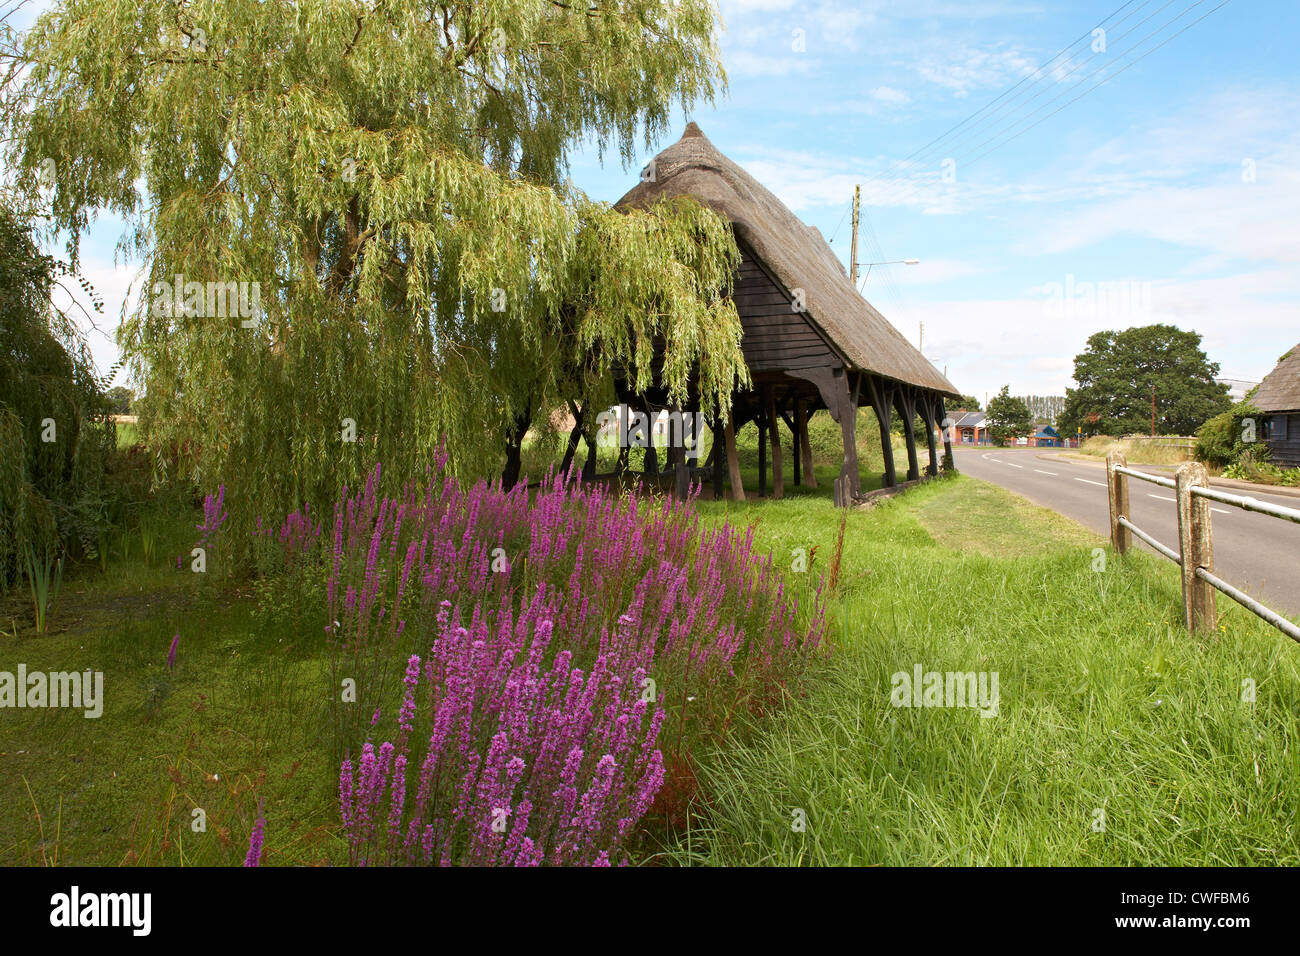 Great Britain England Essex Copford Cart Lodge Farm Building Wild Flowers - Stock Image